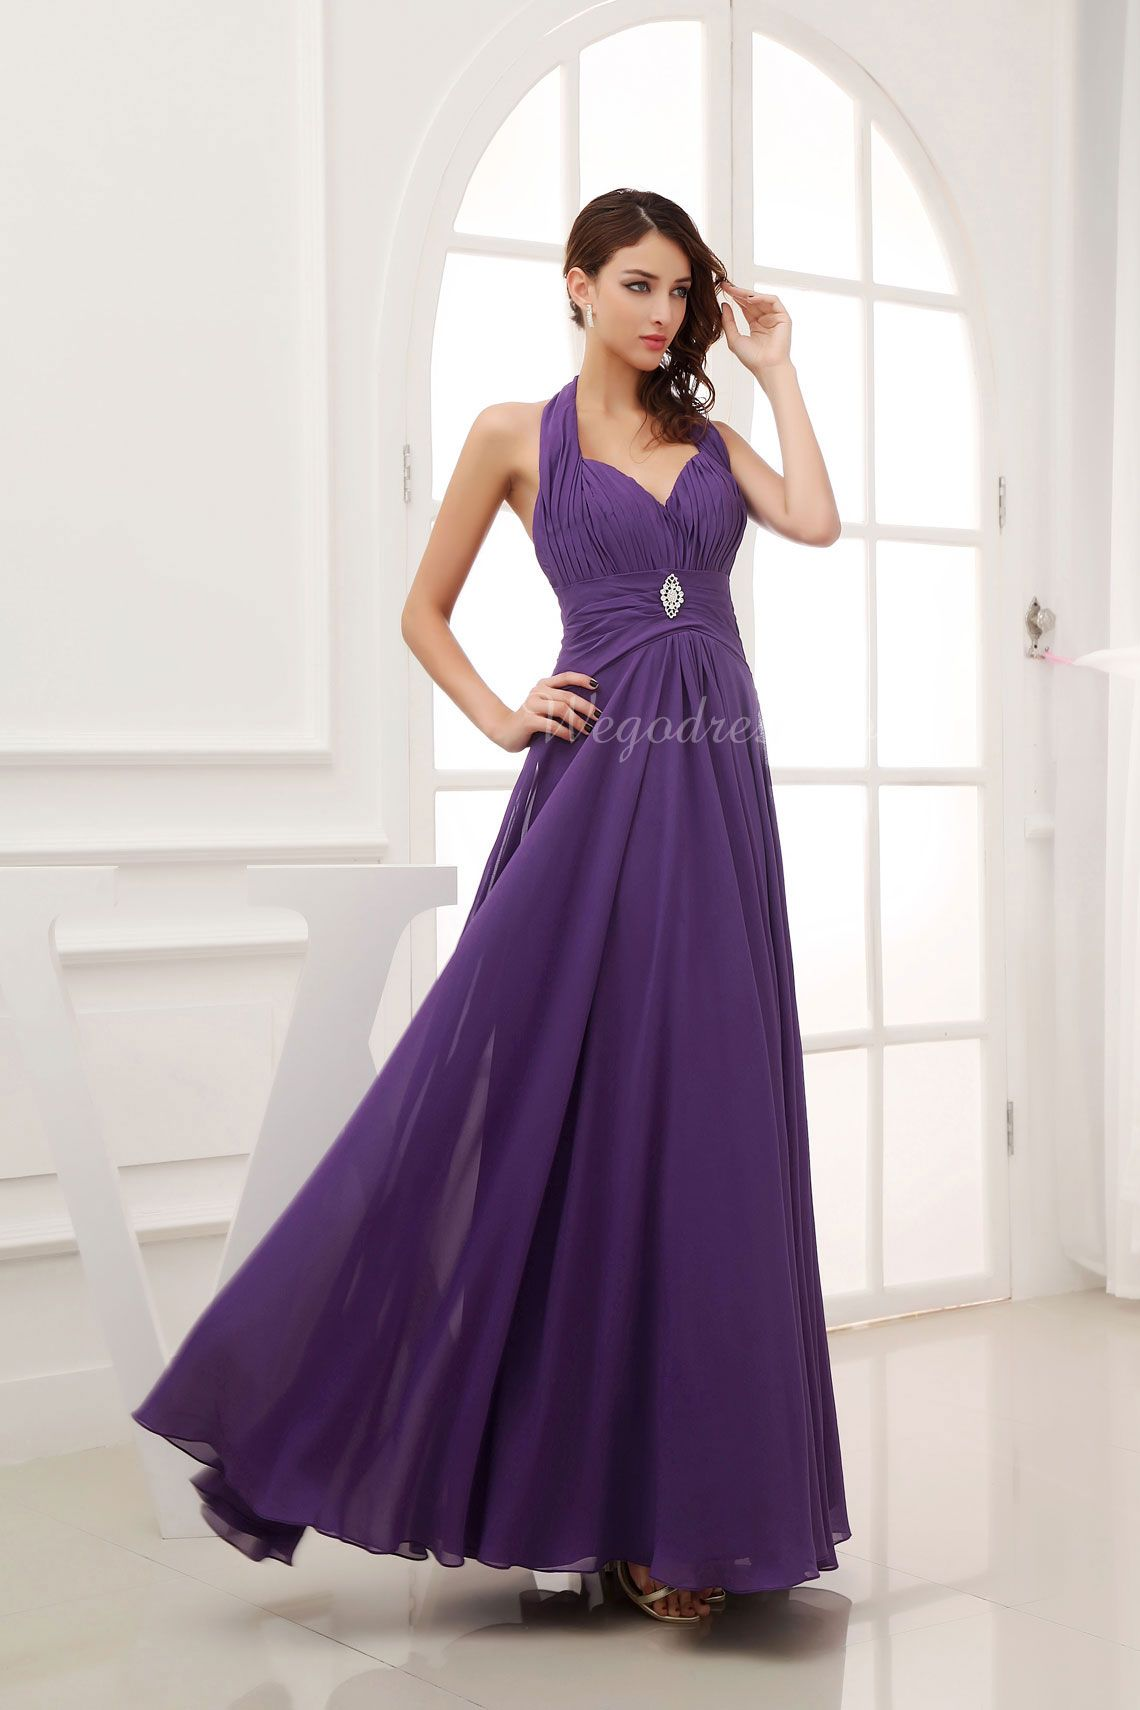 Long Empire Brooch Backless Halter Ruched Sleeveless Prom Dress picture 5